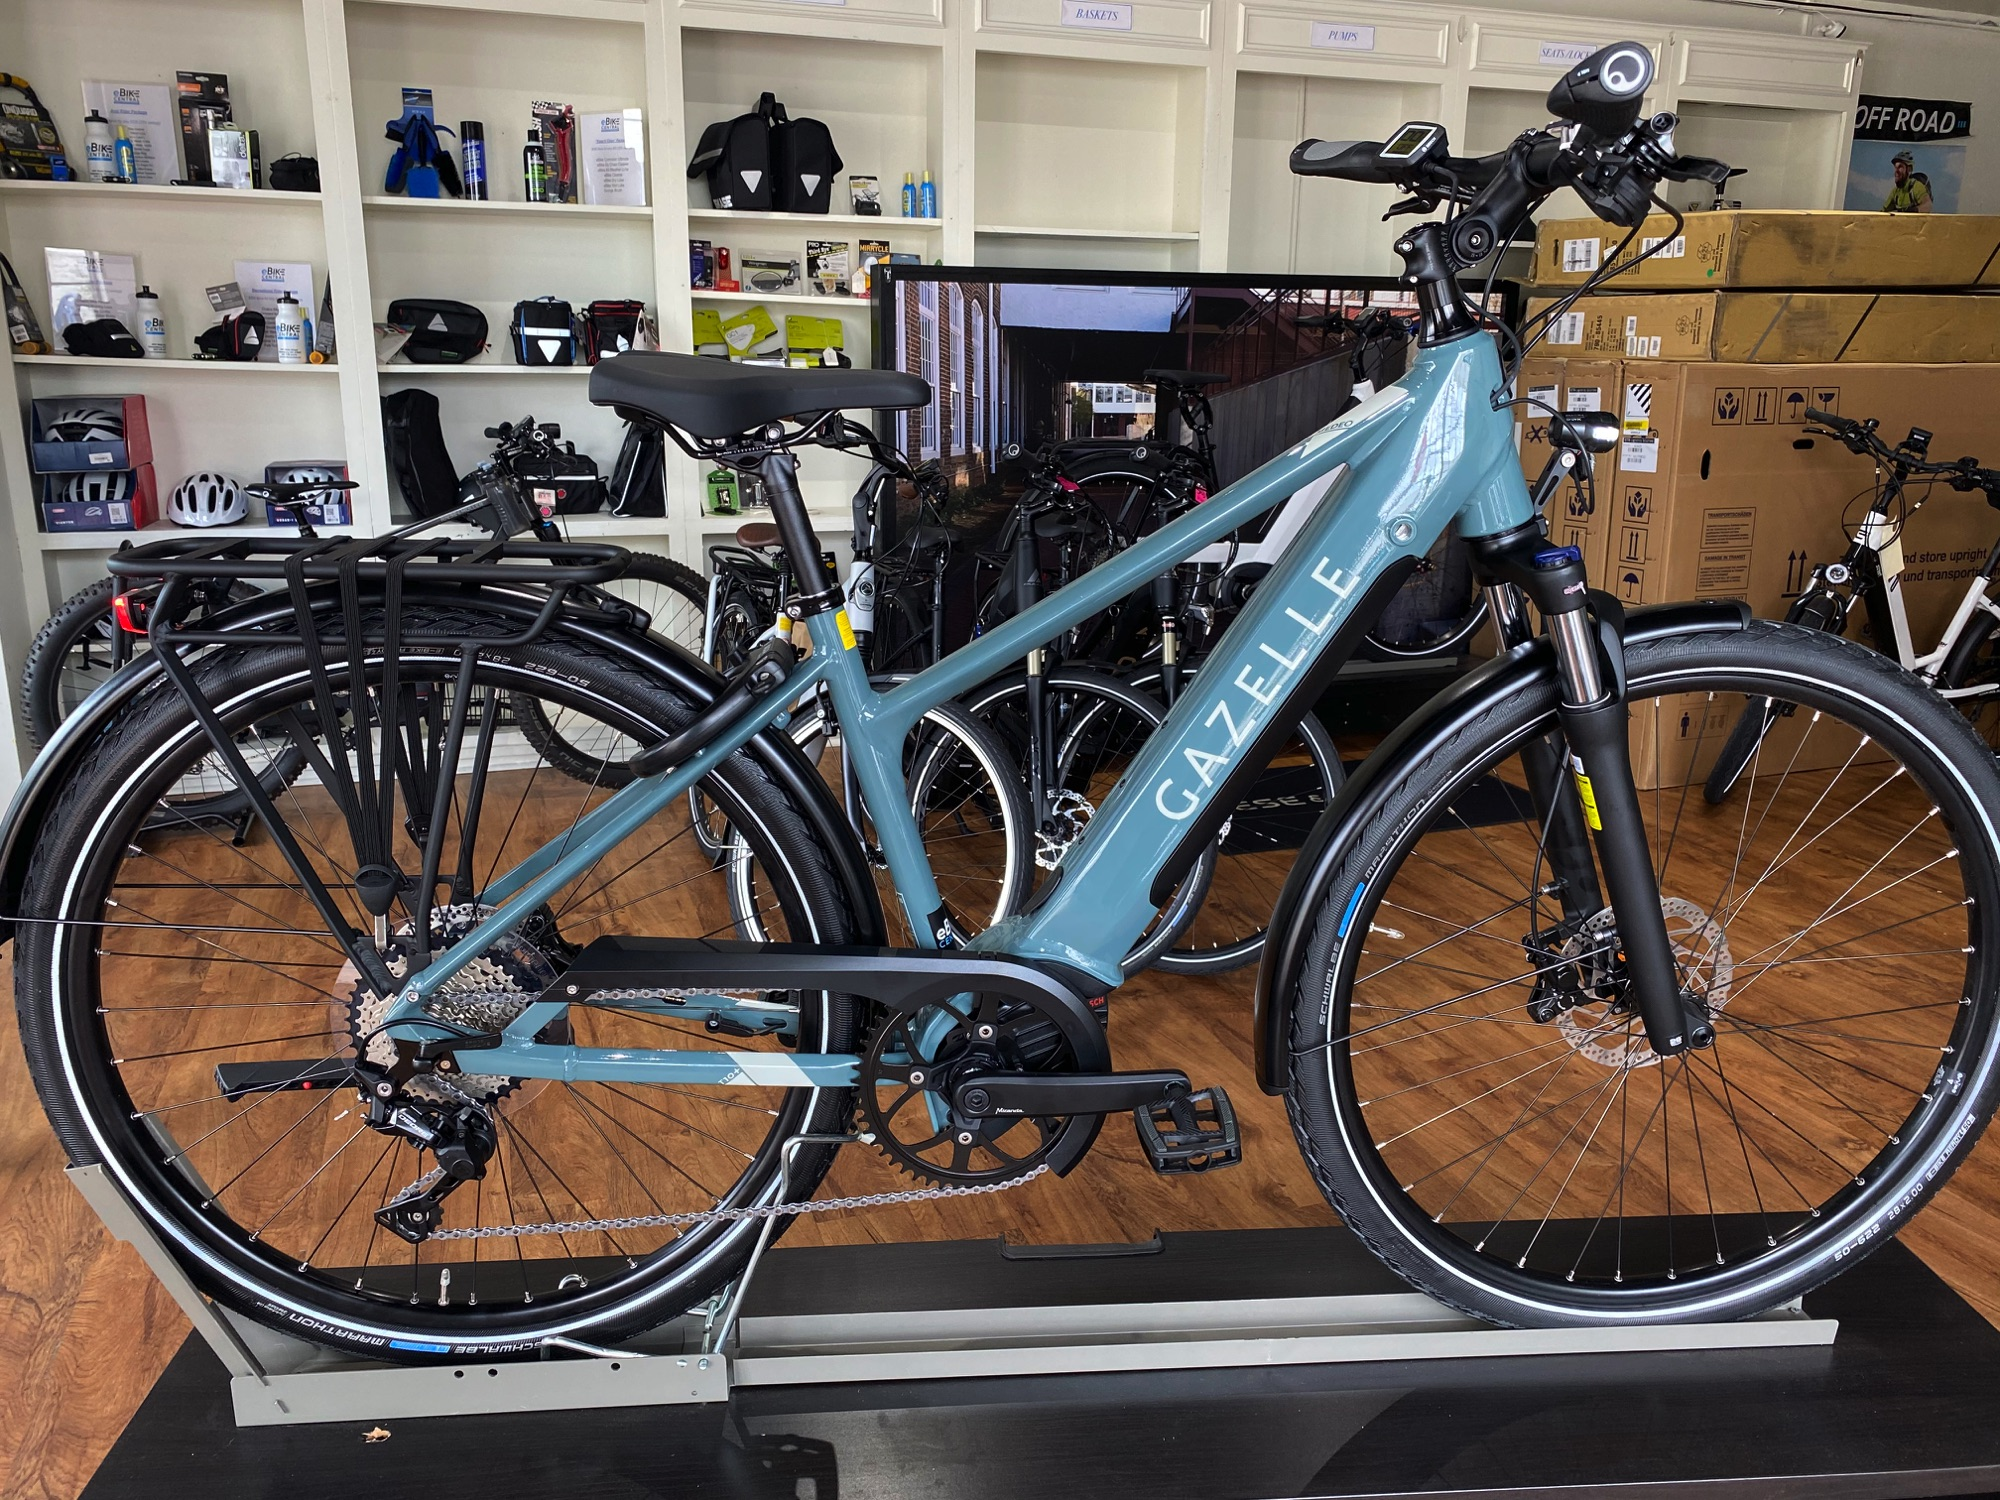 Gazelle Medeo T10+ electric pedal assist bicycle